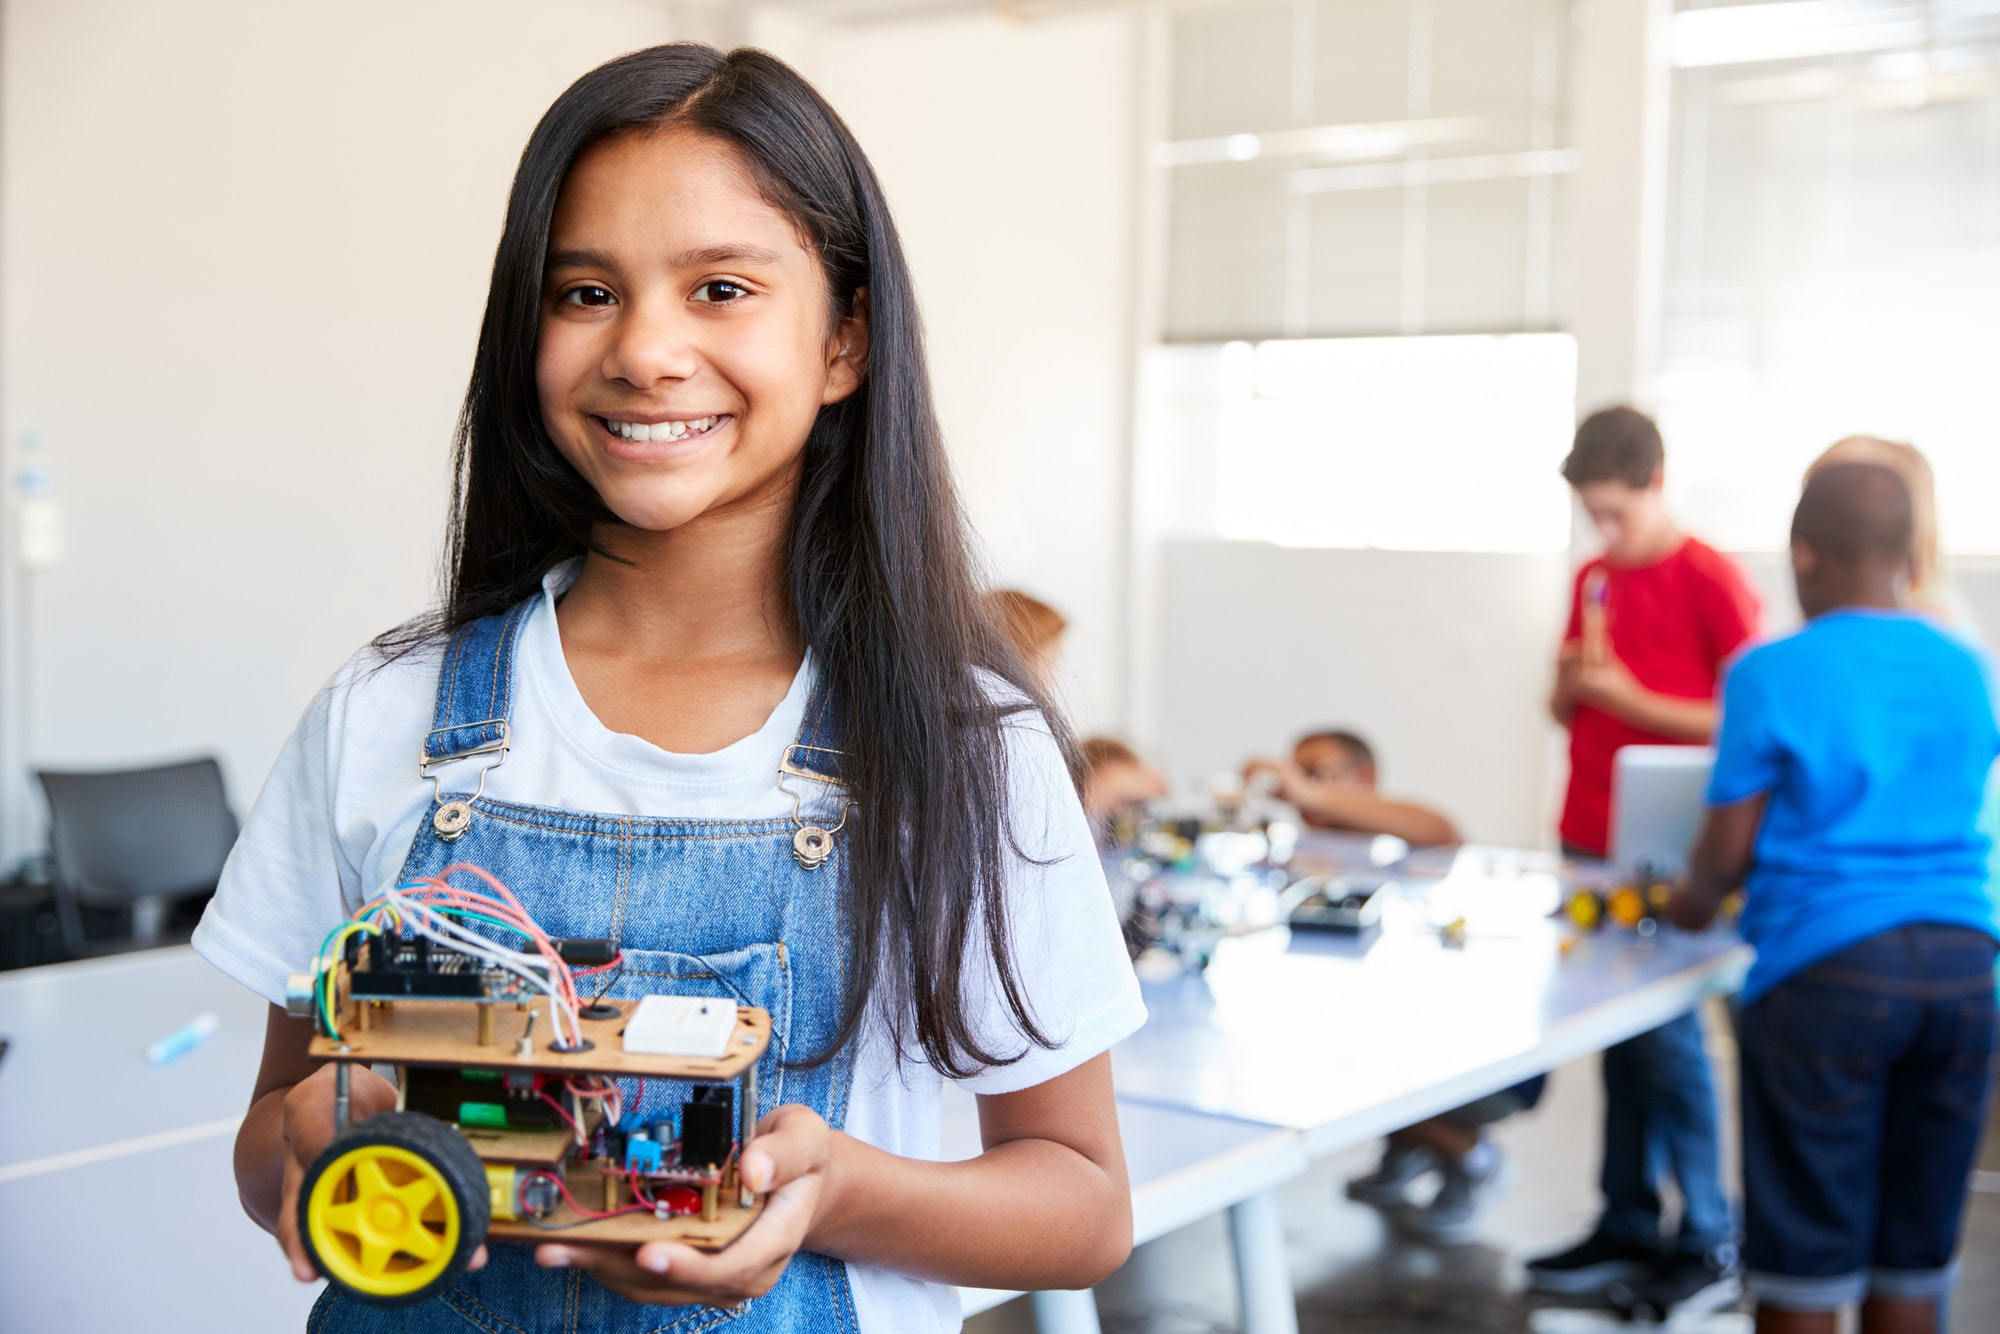 portrait-of-female-student-building-robot-vehicle-in-after-school-computer-coding-class-1.jpg